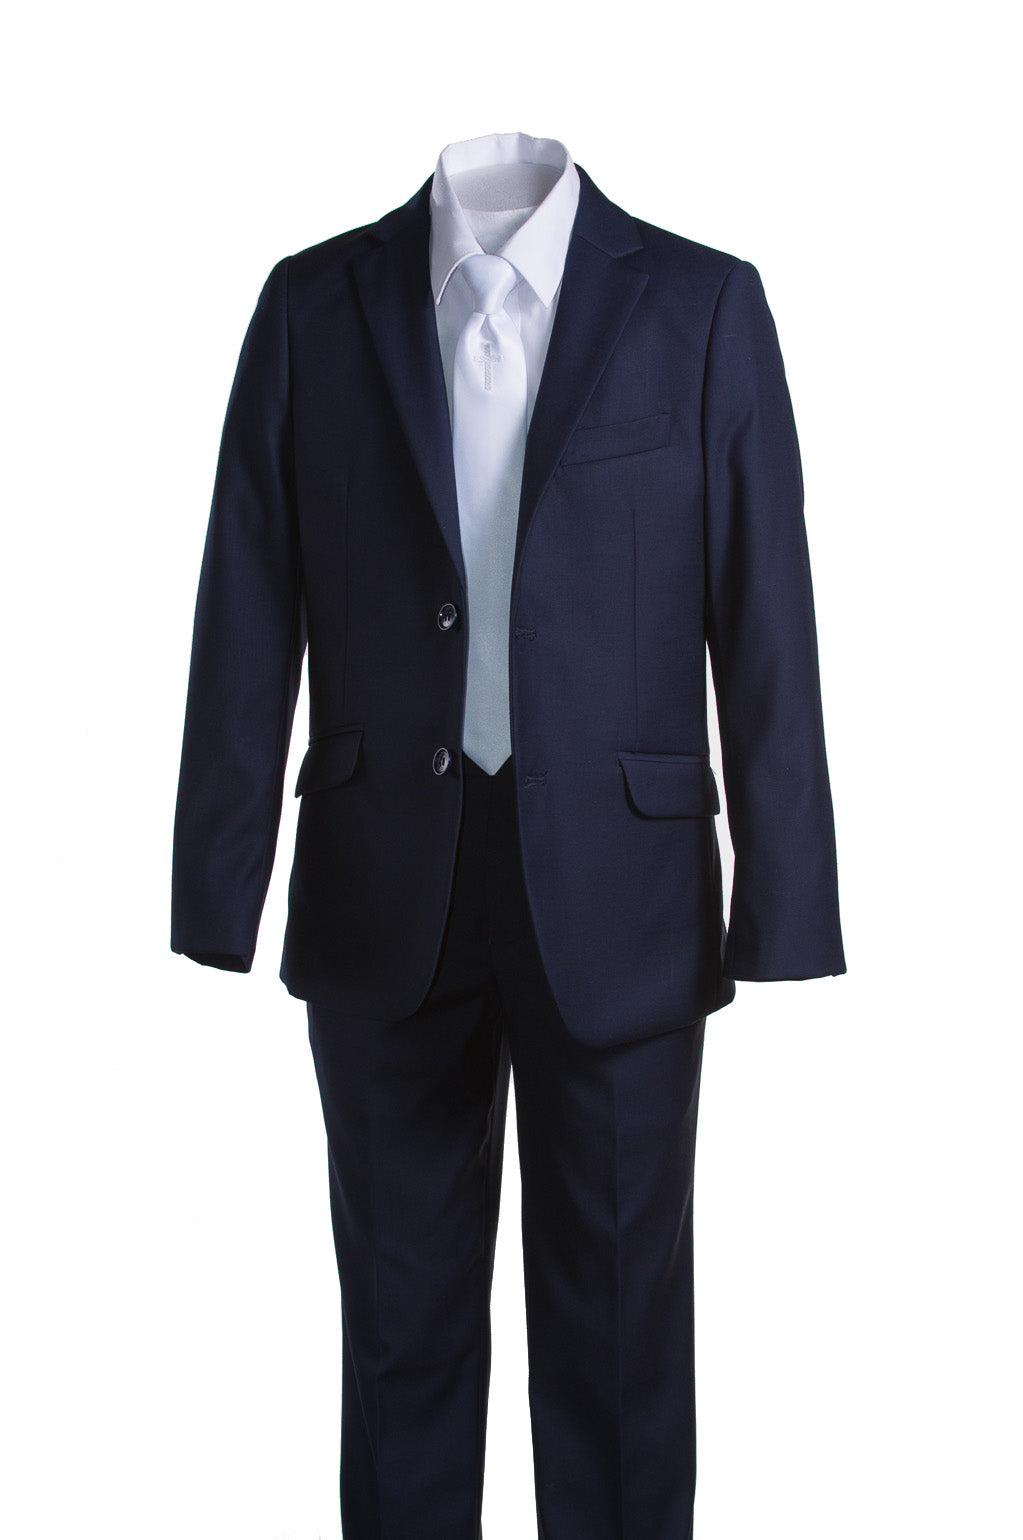 Boys Navy Blue Communion Suit with Religious Cross Neck Tie (Slim & Husky) - The Christening Cottage